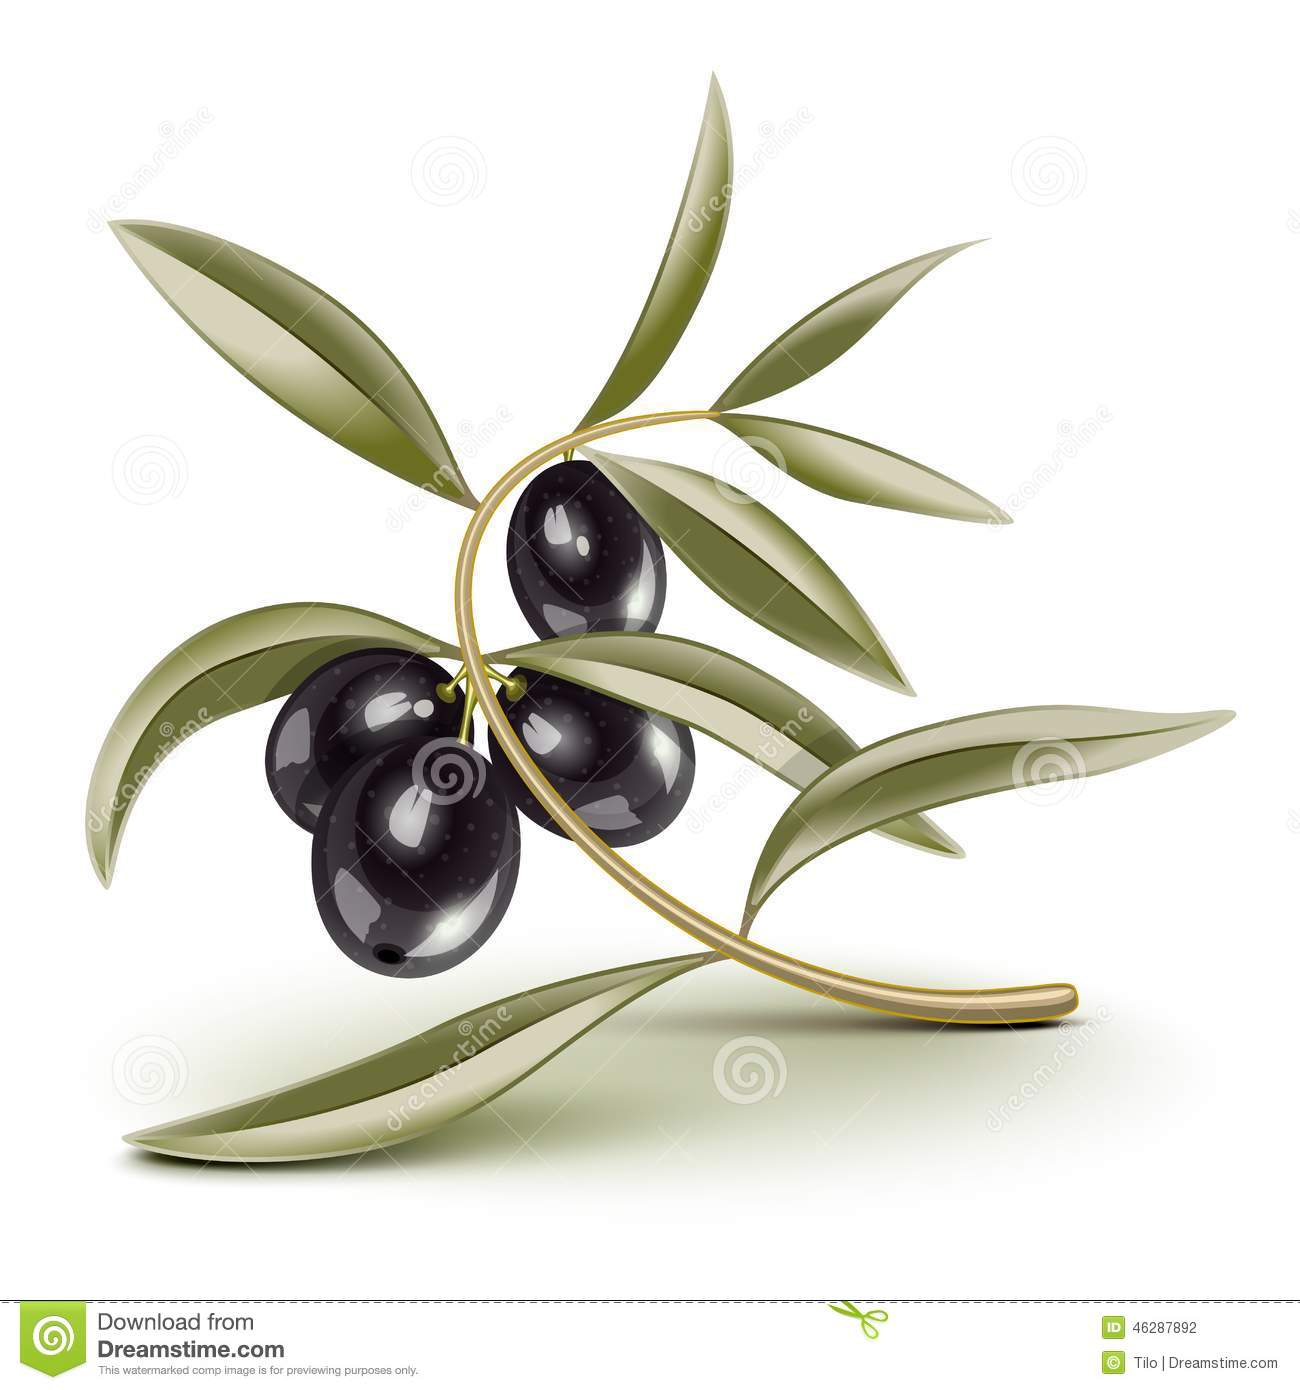 olive branch black single men Olive branch, ms greenville, ms how do black singles find dates in new york for men: bookmark page | site map match.